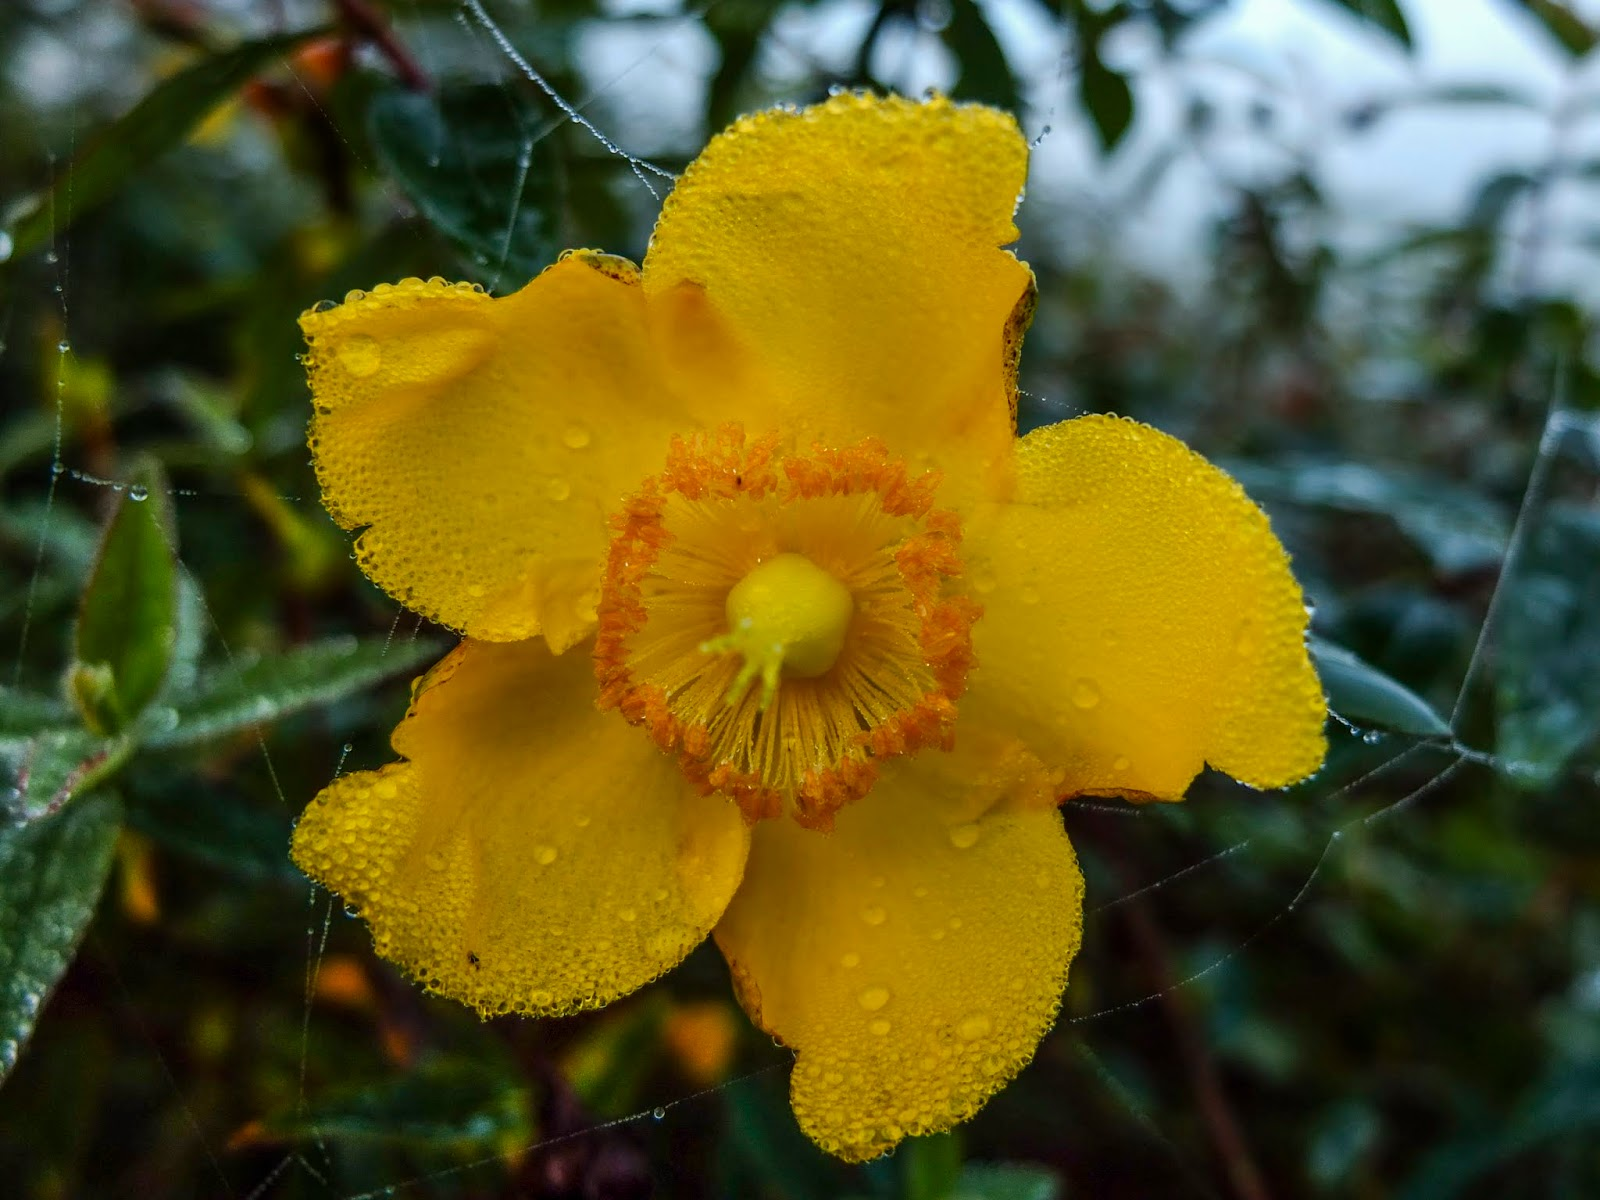 Rain drops on the petals of a yellow flower.